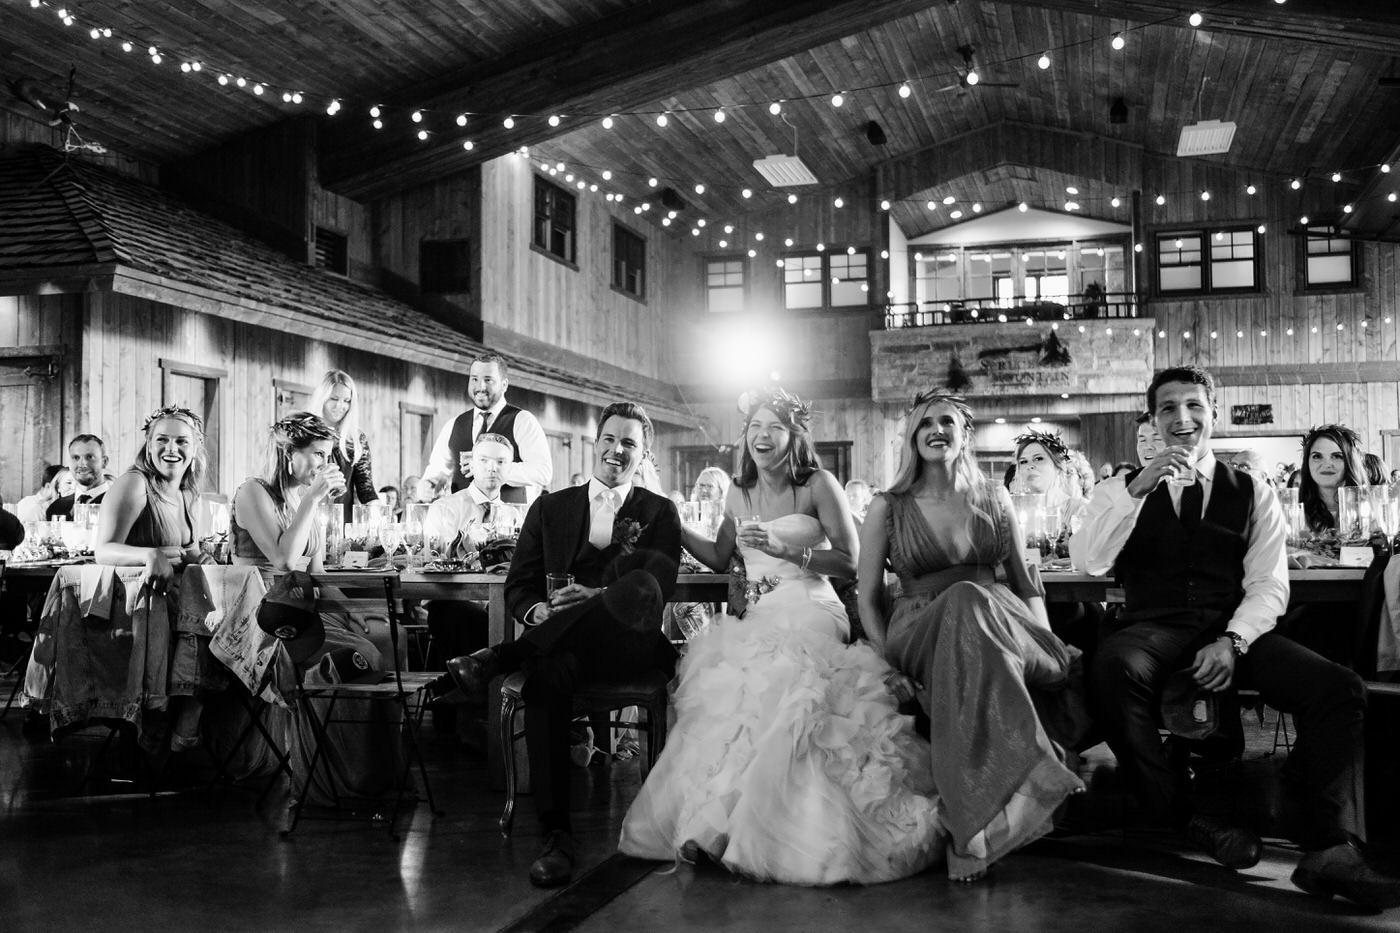 287-pacific-northwest-wedding-photography-by-ryan-flynn.jpg